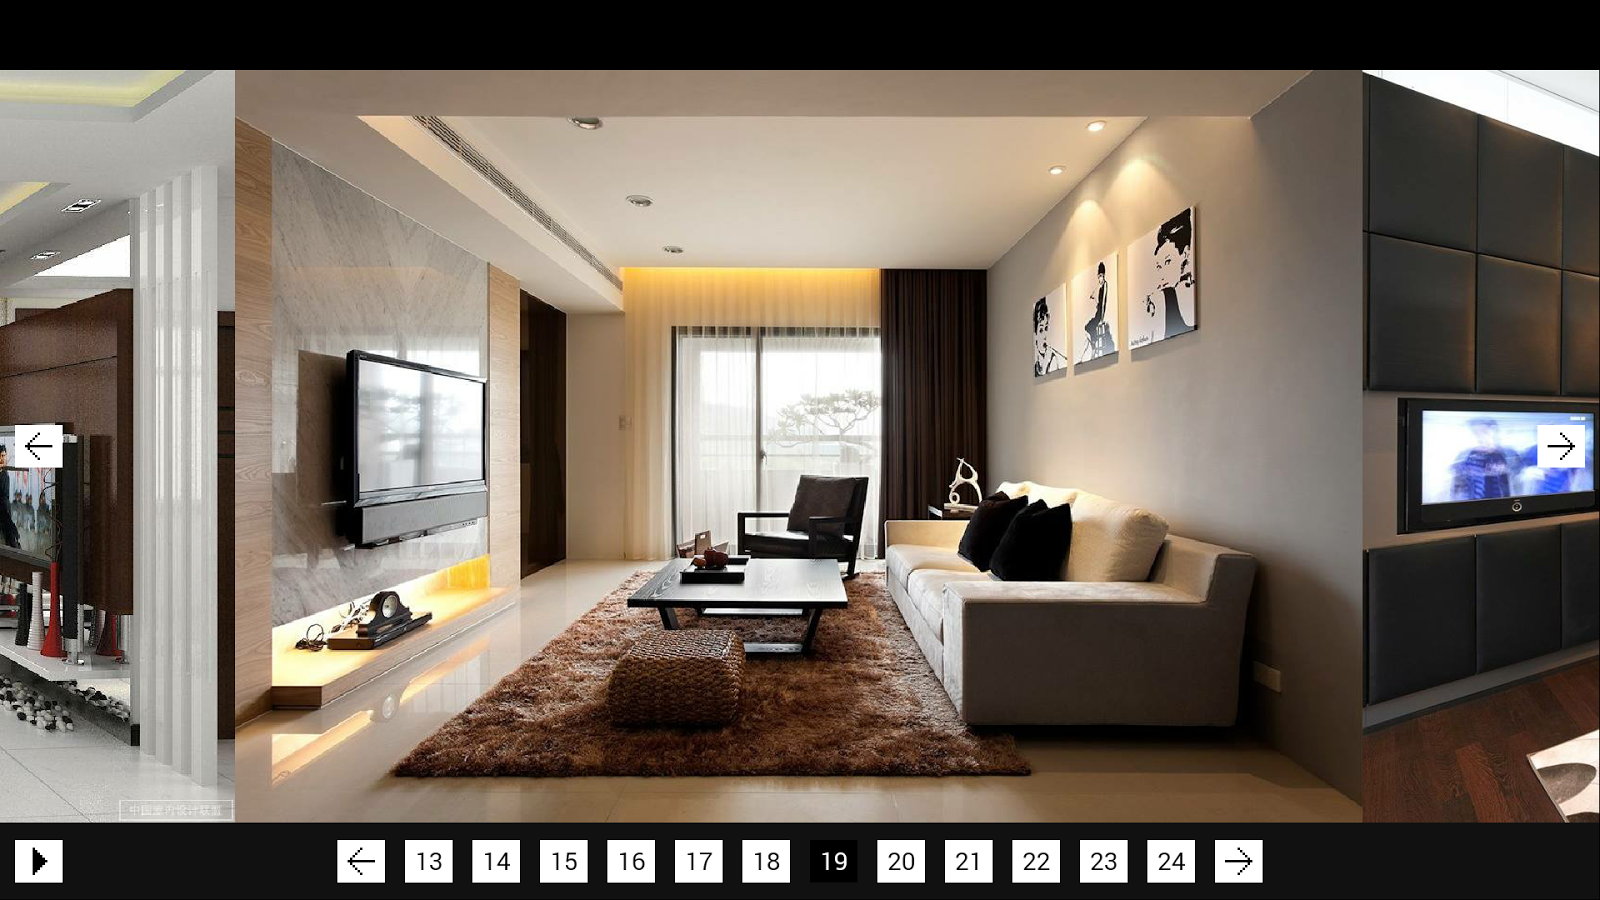 Home interior design android apps on google play for At home interior design